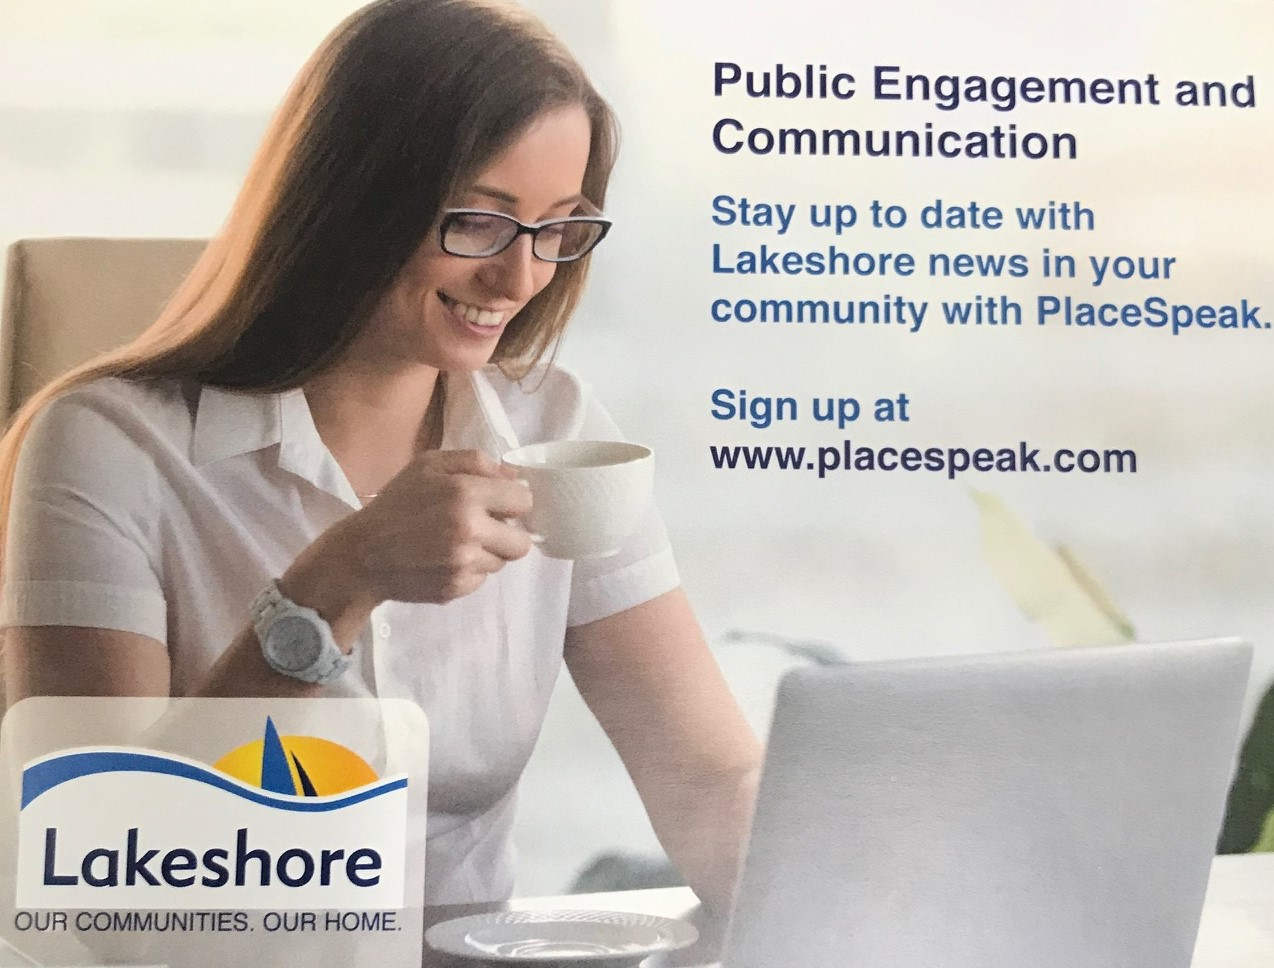 Placespeak - Atlas Tube Centre Recreation Master Plan